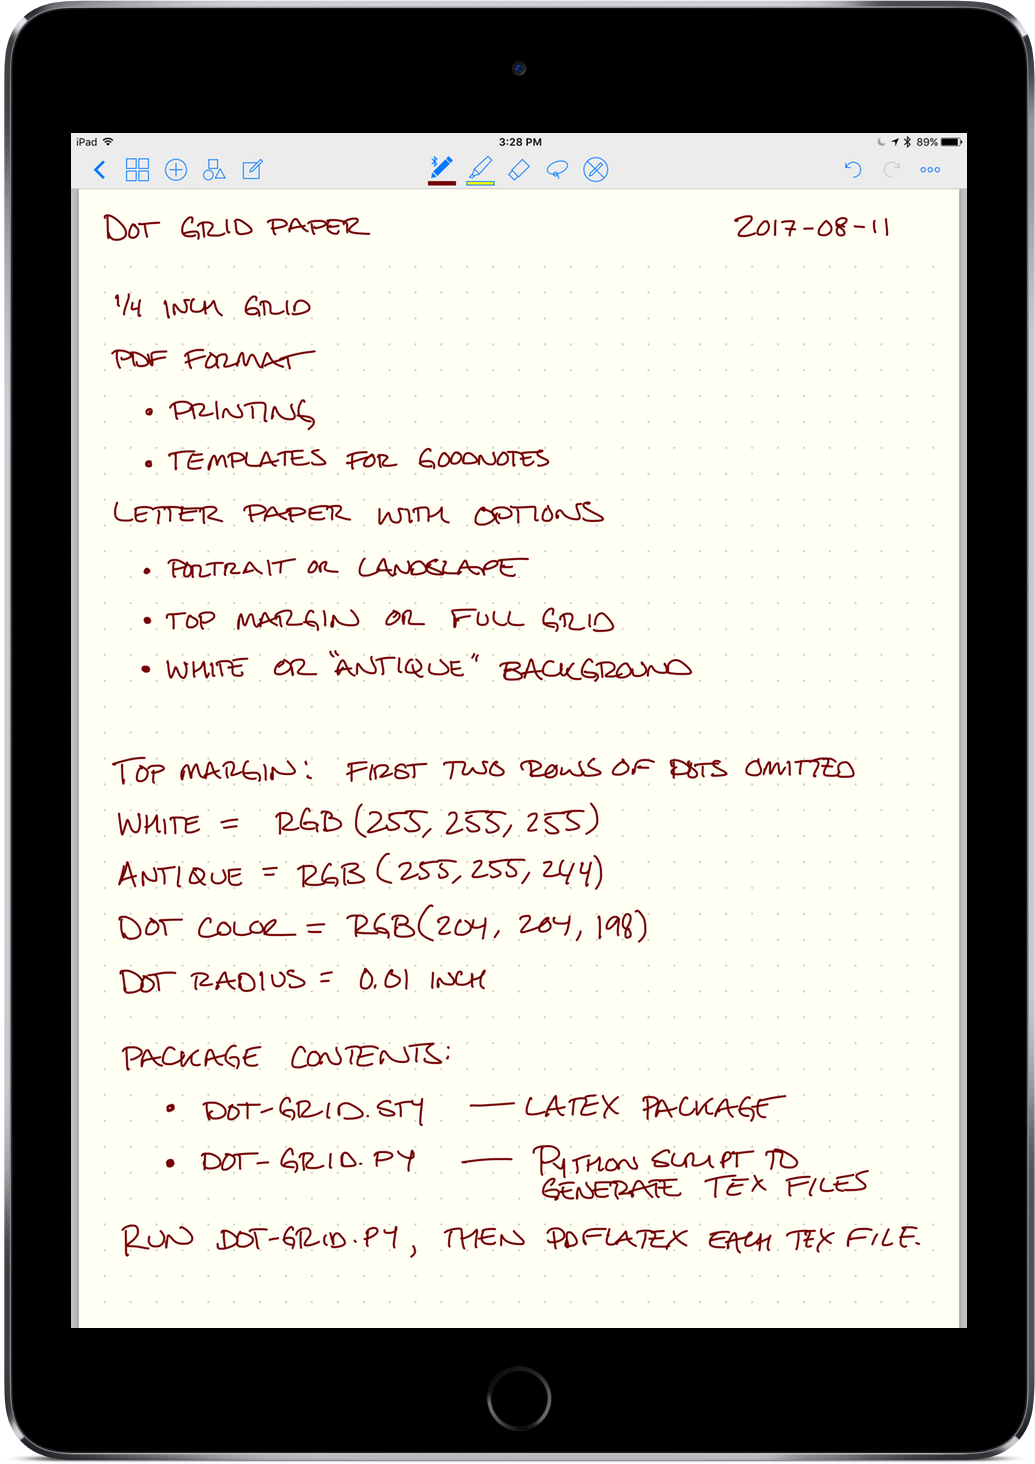 Dot Grid Paper Template in GoodNotes on iPad